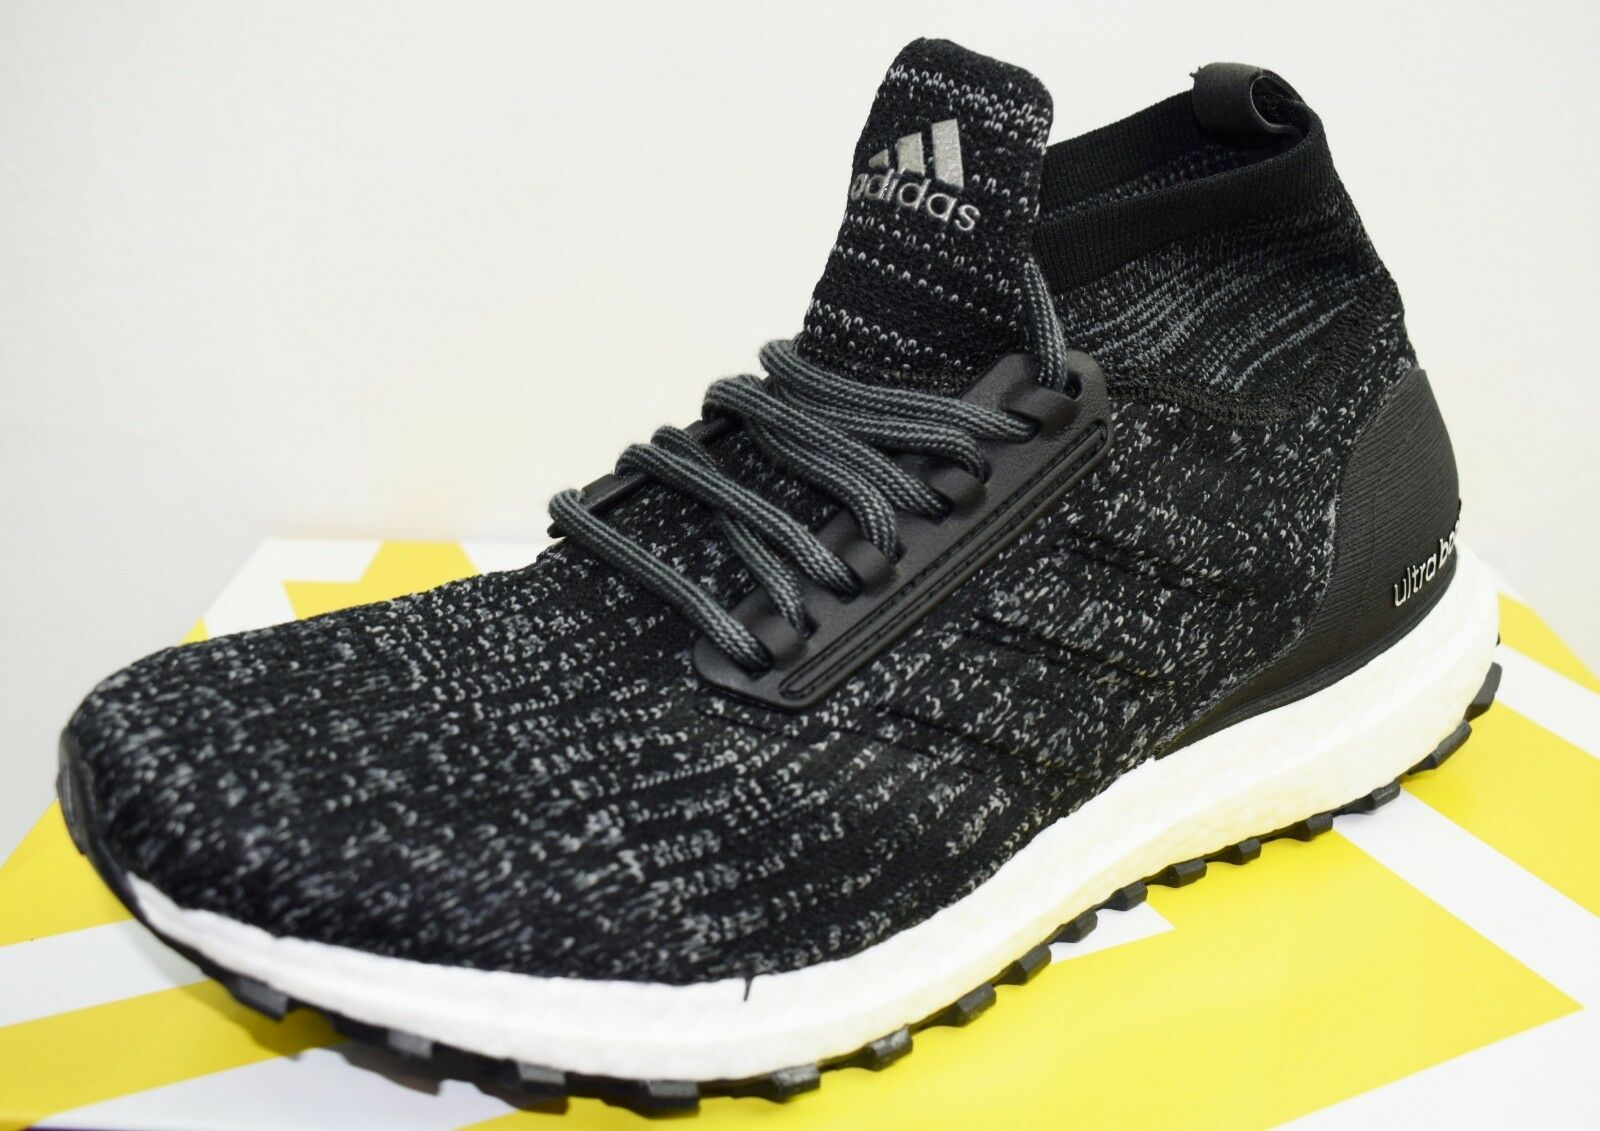 ADIDAS ULTRA BOOST ALL TERRAIN  MEN'S TRAINERS BRAND NEW SIZE UK 7 (DG18) - S